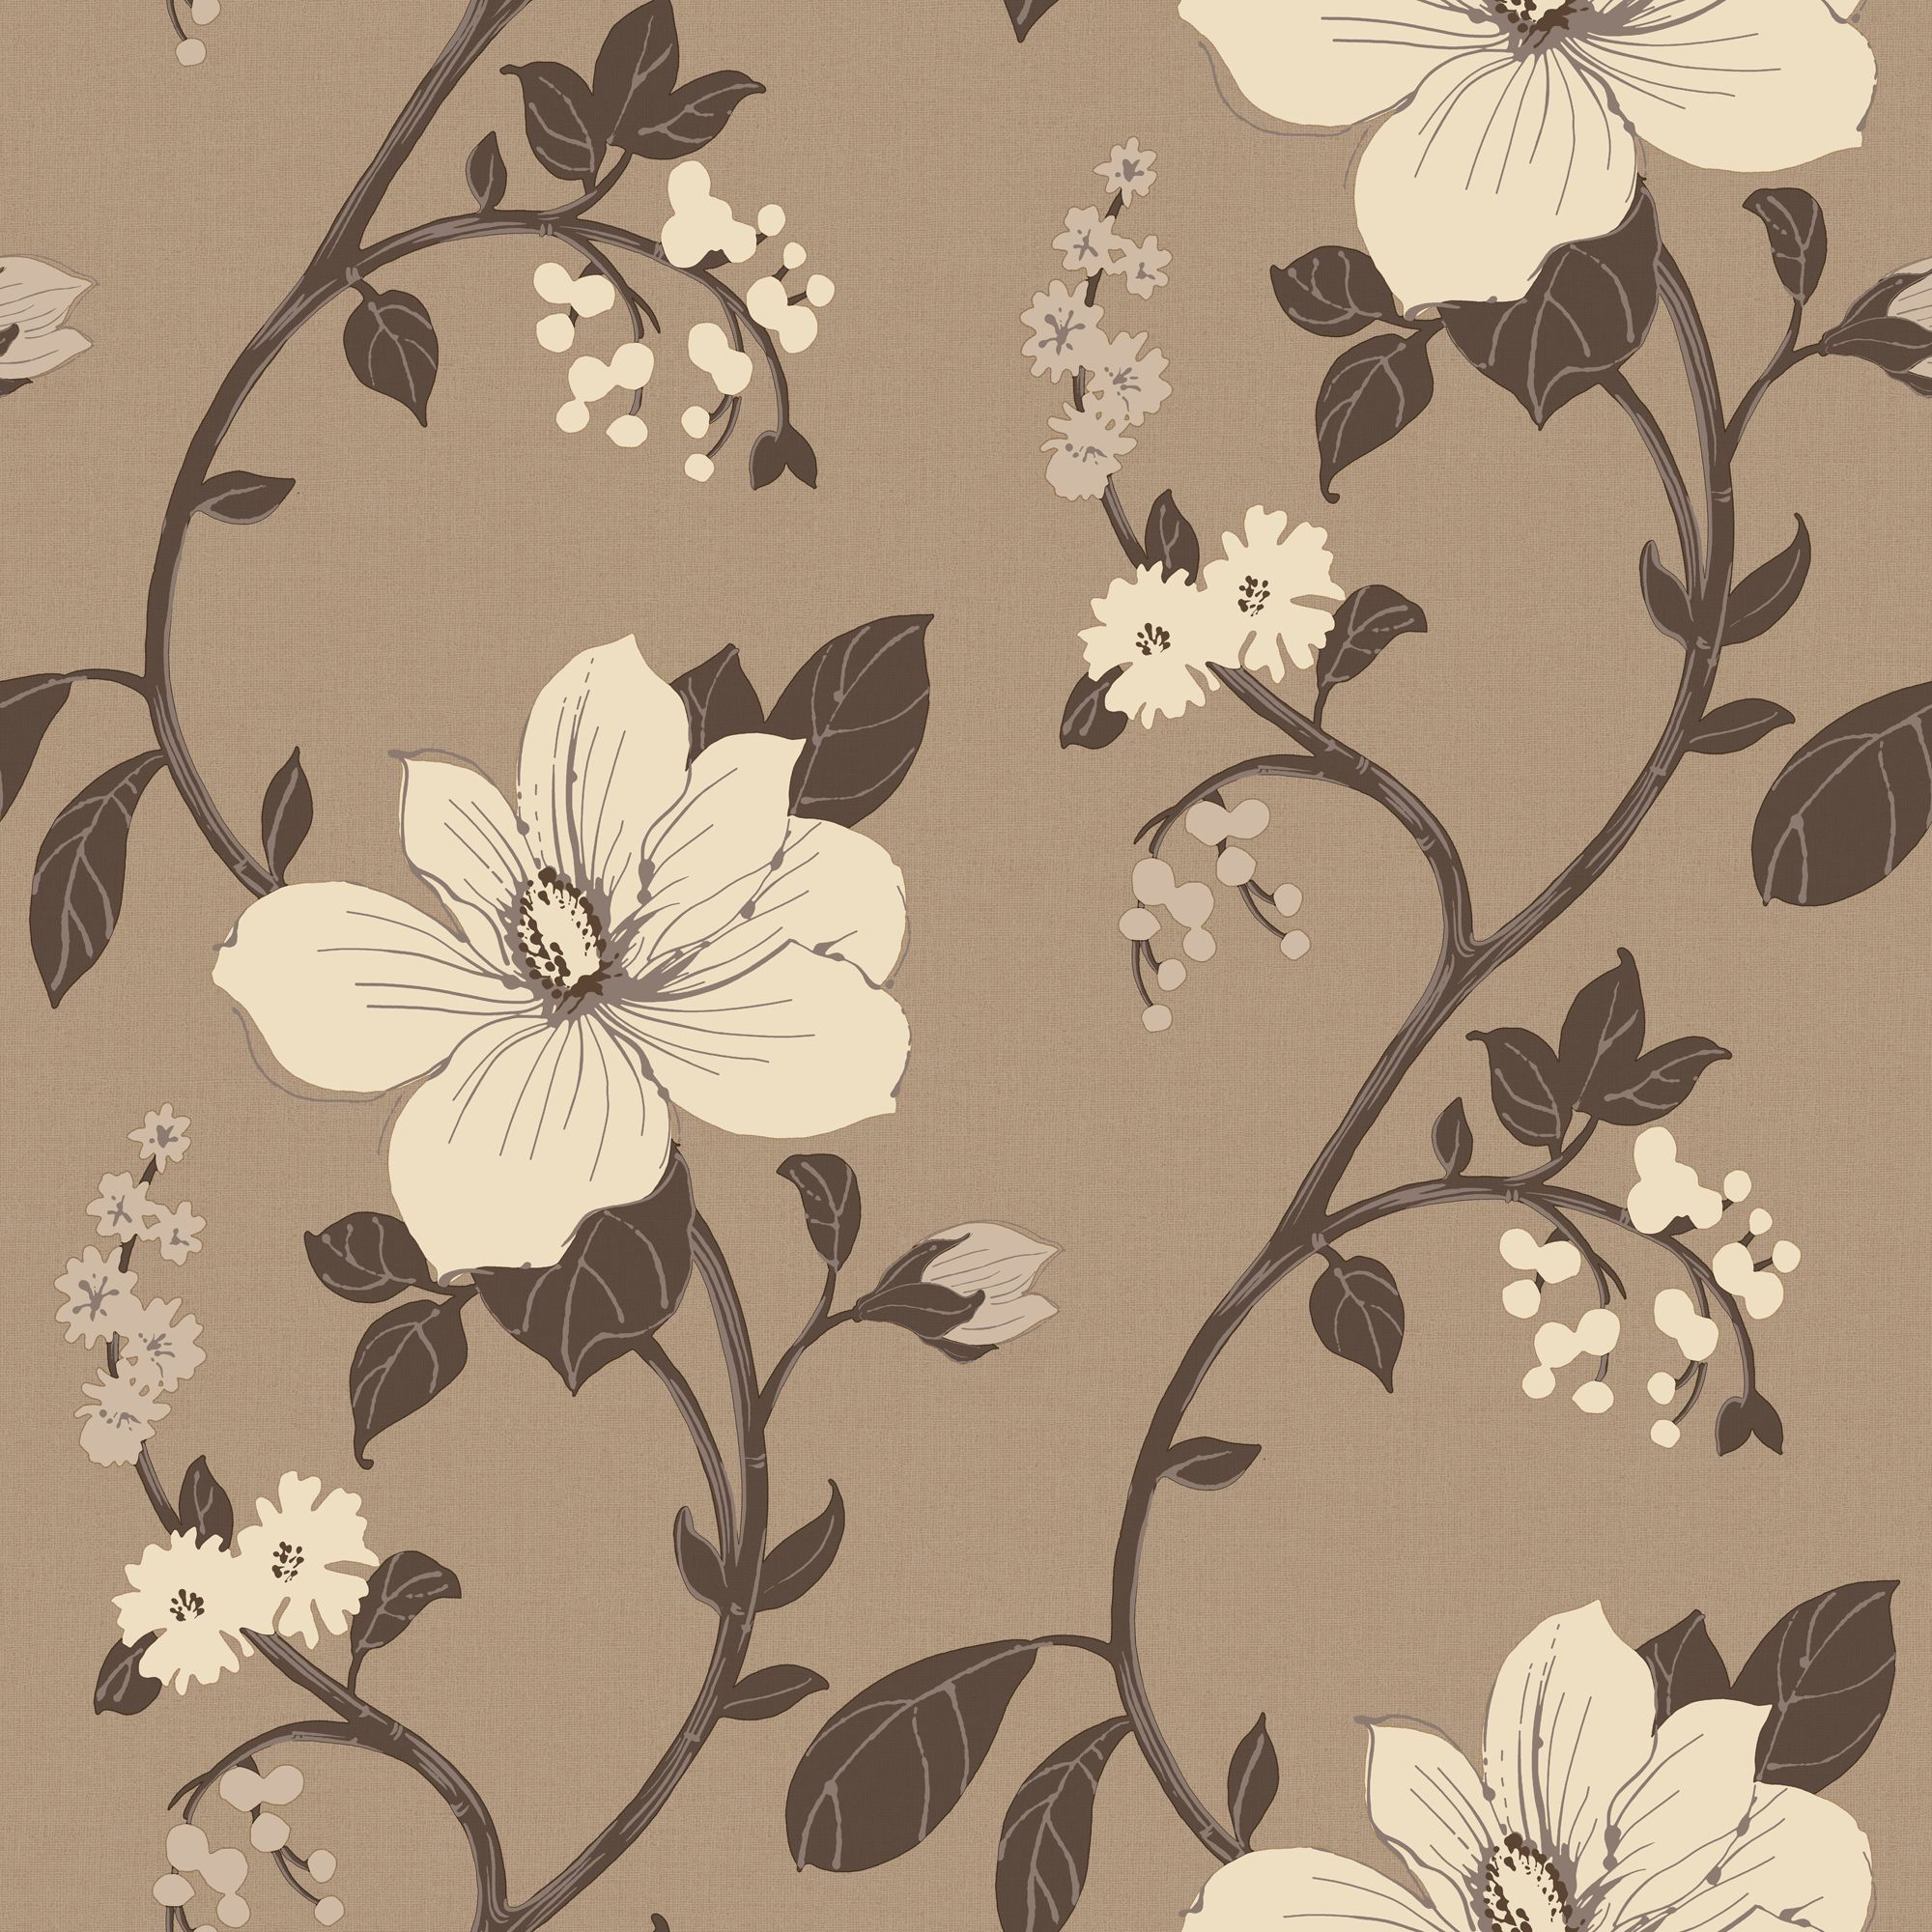 Home diy wallpaper illustration arthouse imagine fern plum motif vinyl - Arthouse Opera Tatami Stone Floral Wallpaper B Q For All Your Home And Garden Supplies And Advice On All The Latest Diy Trends